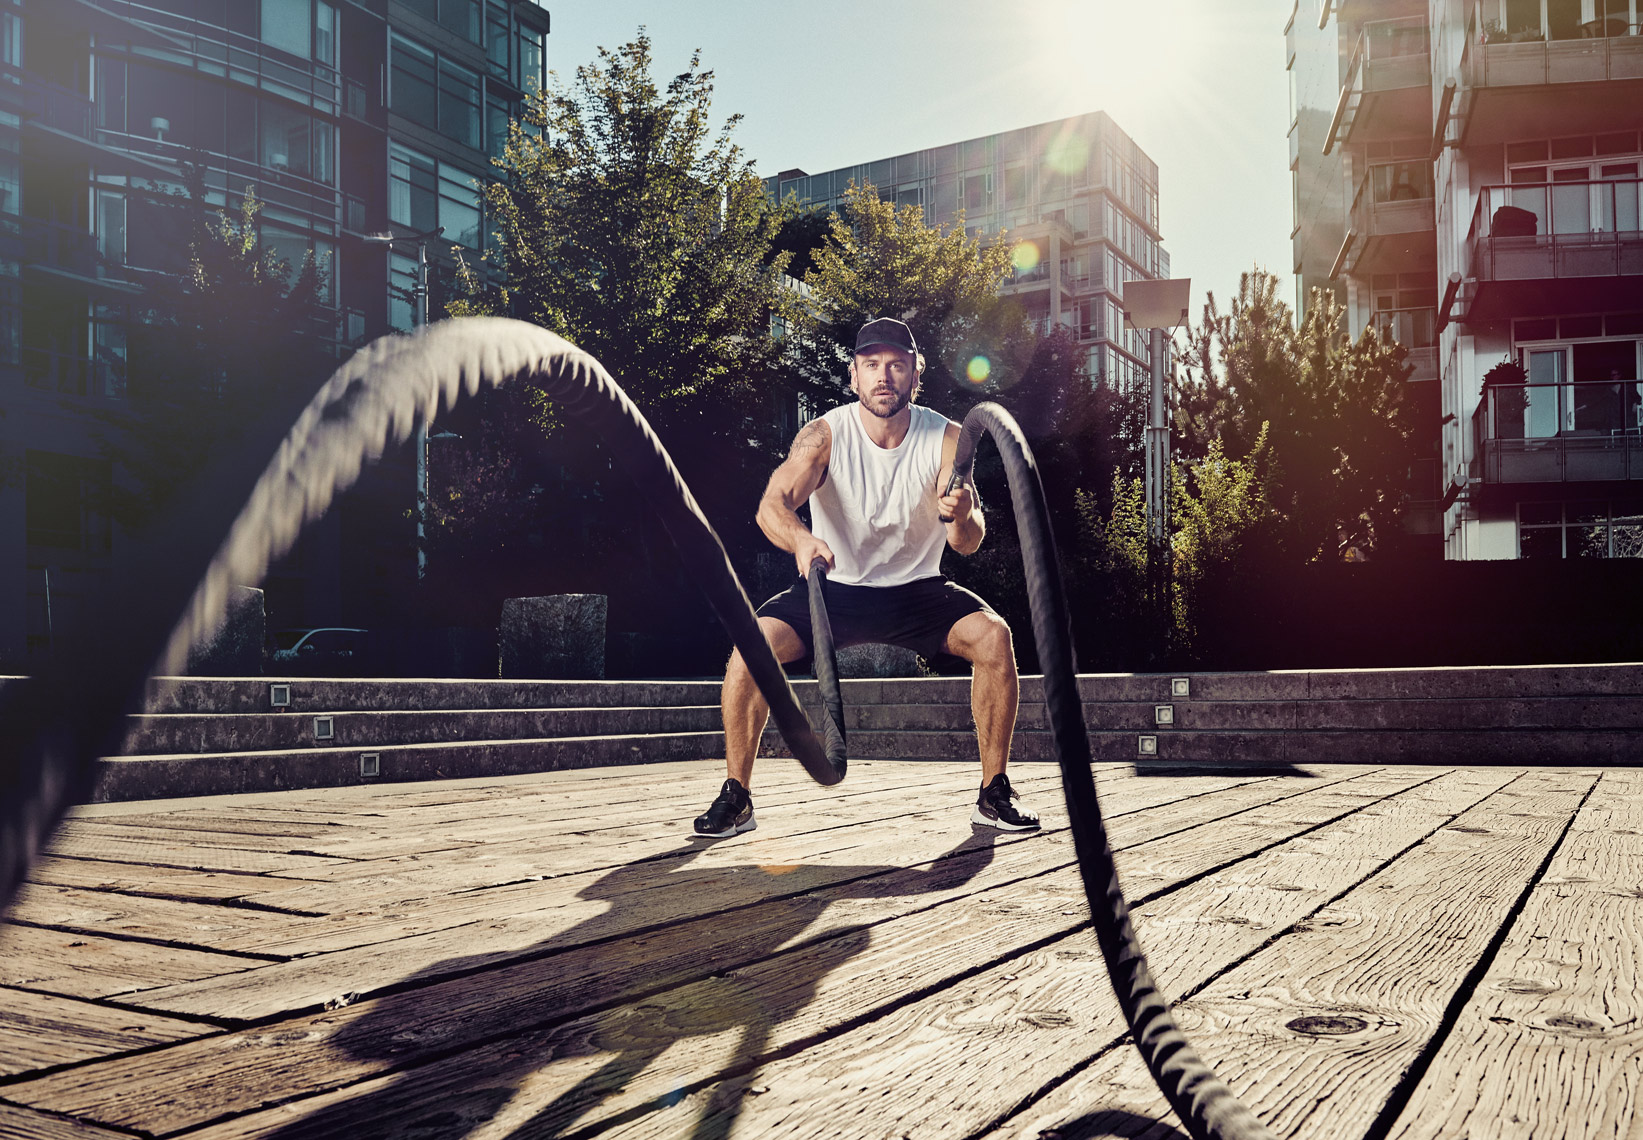 2017-Vancouver-SportsandFitness-Photographer-ErichSaide-Advertising-Lifestyle-Battleropes